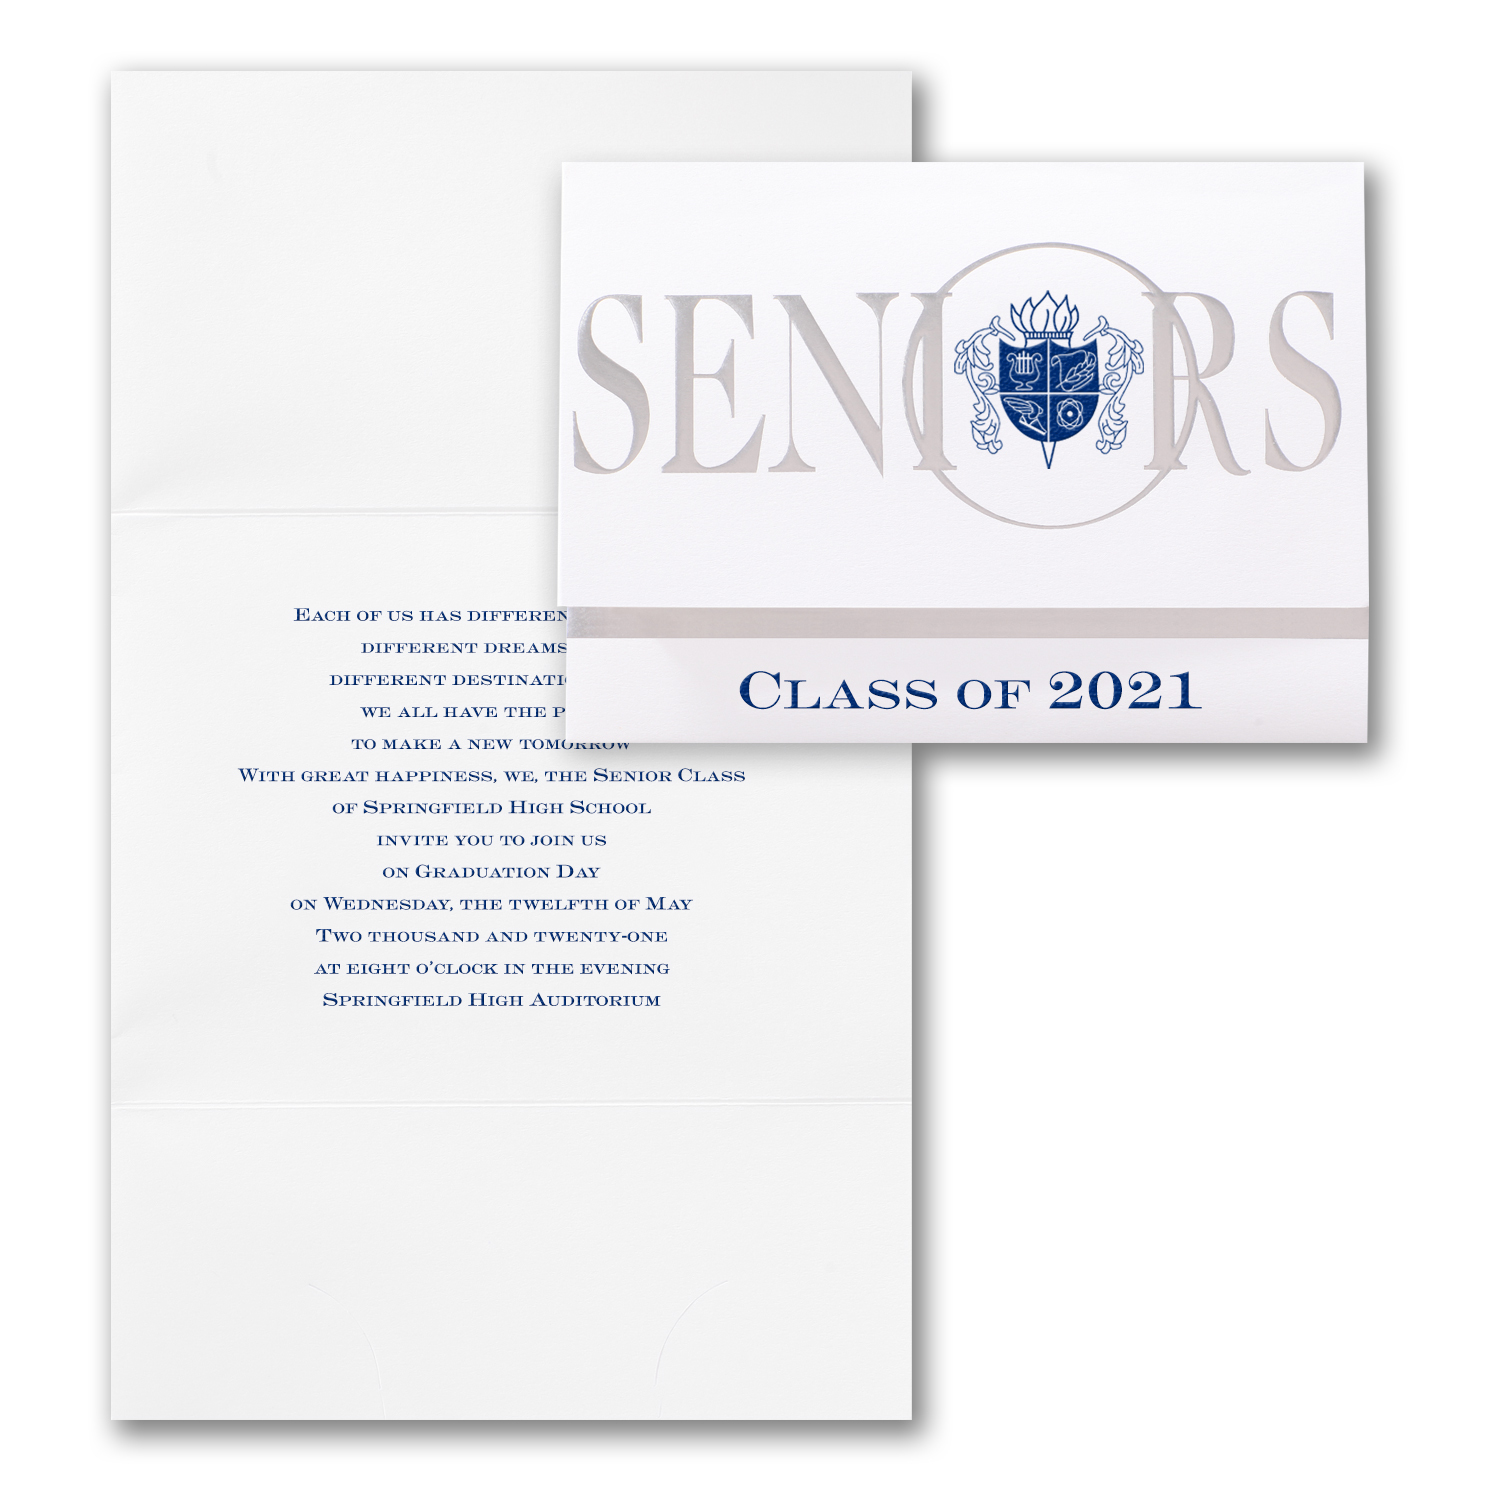 Graduation Announcements & Invitations Design Services